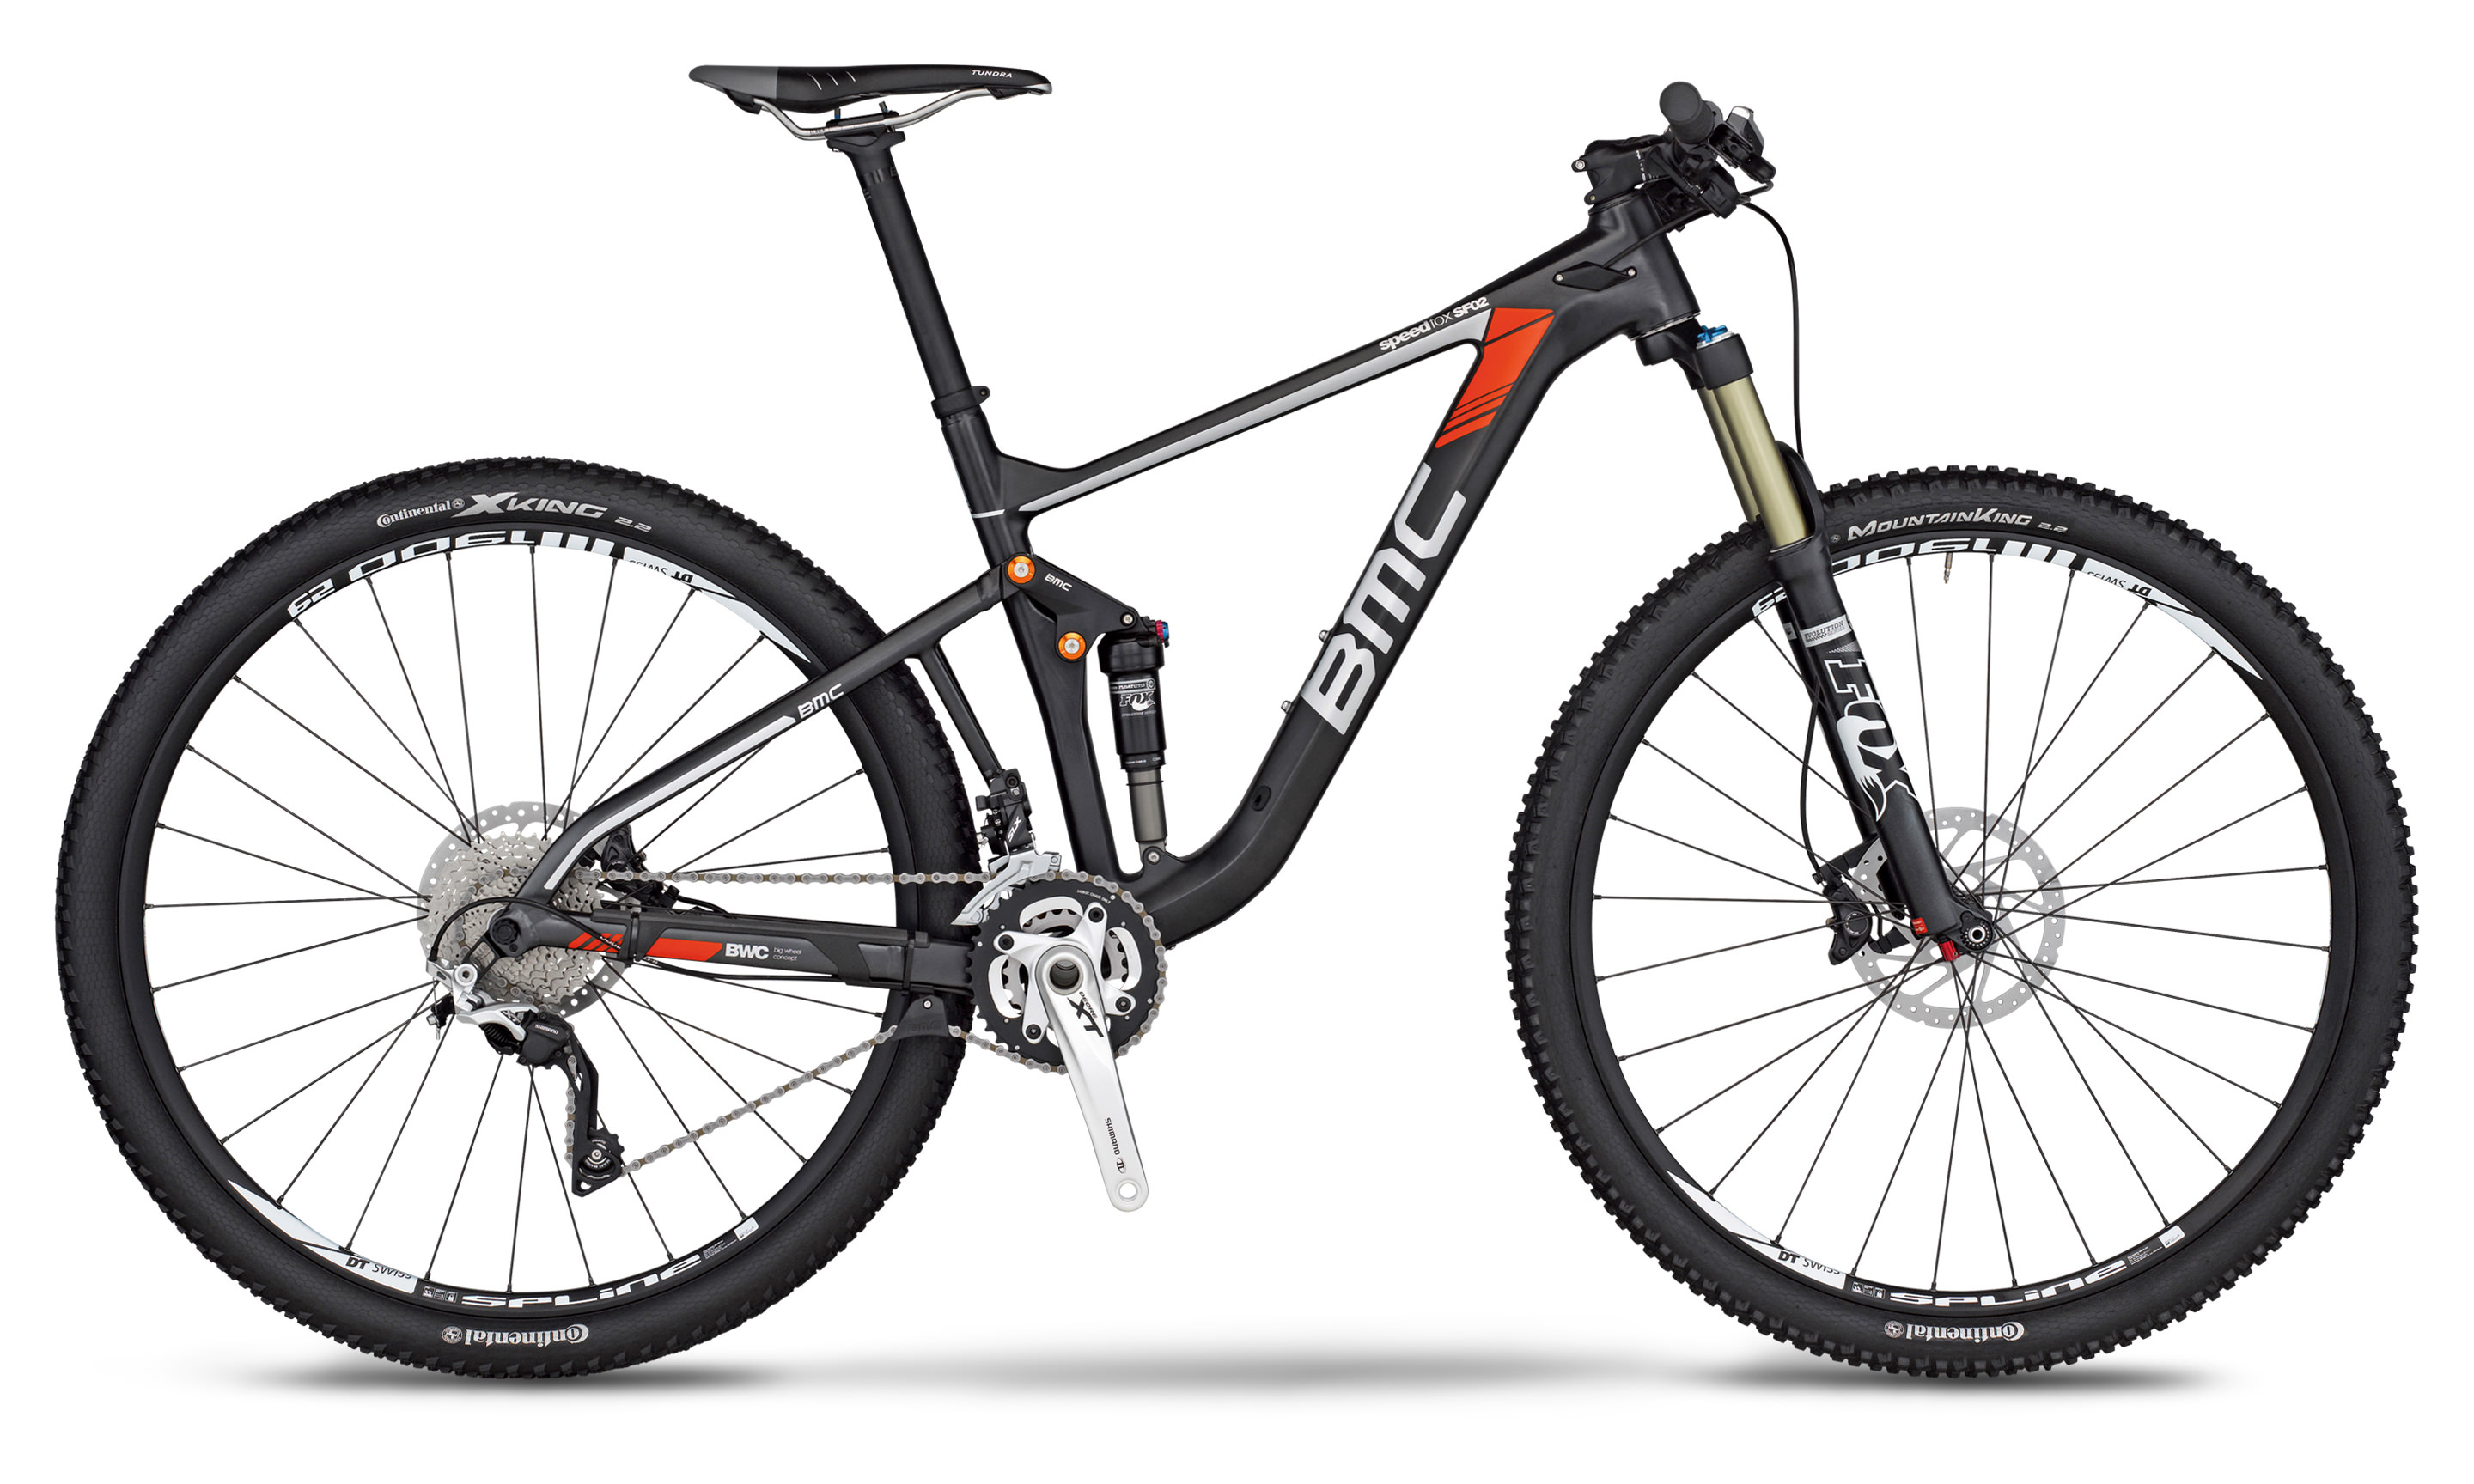 BMC SPEEDFOX SF02 29 XT SLX 2015